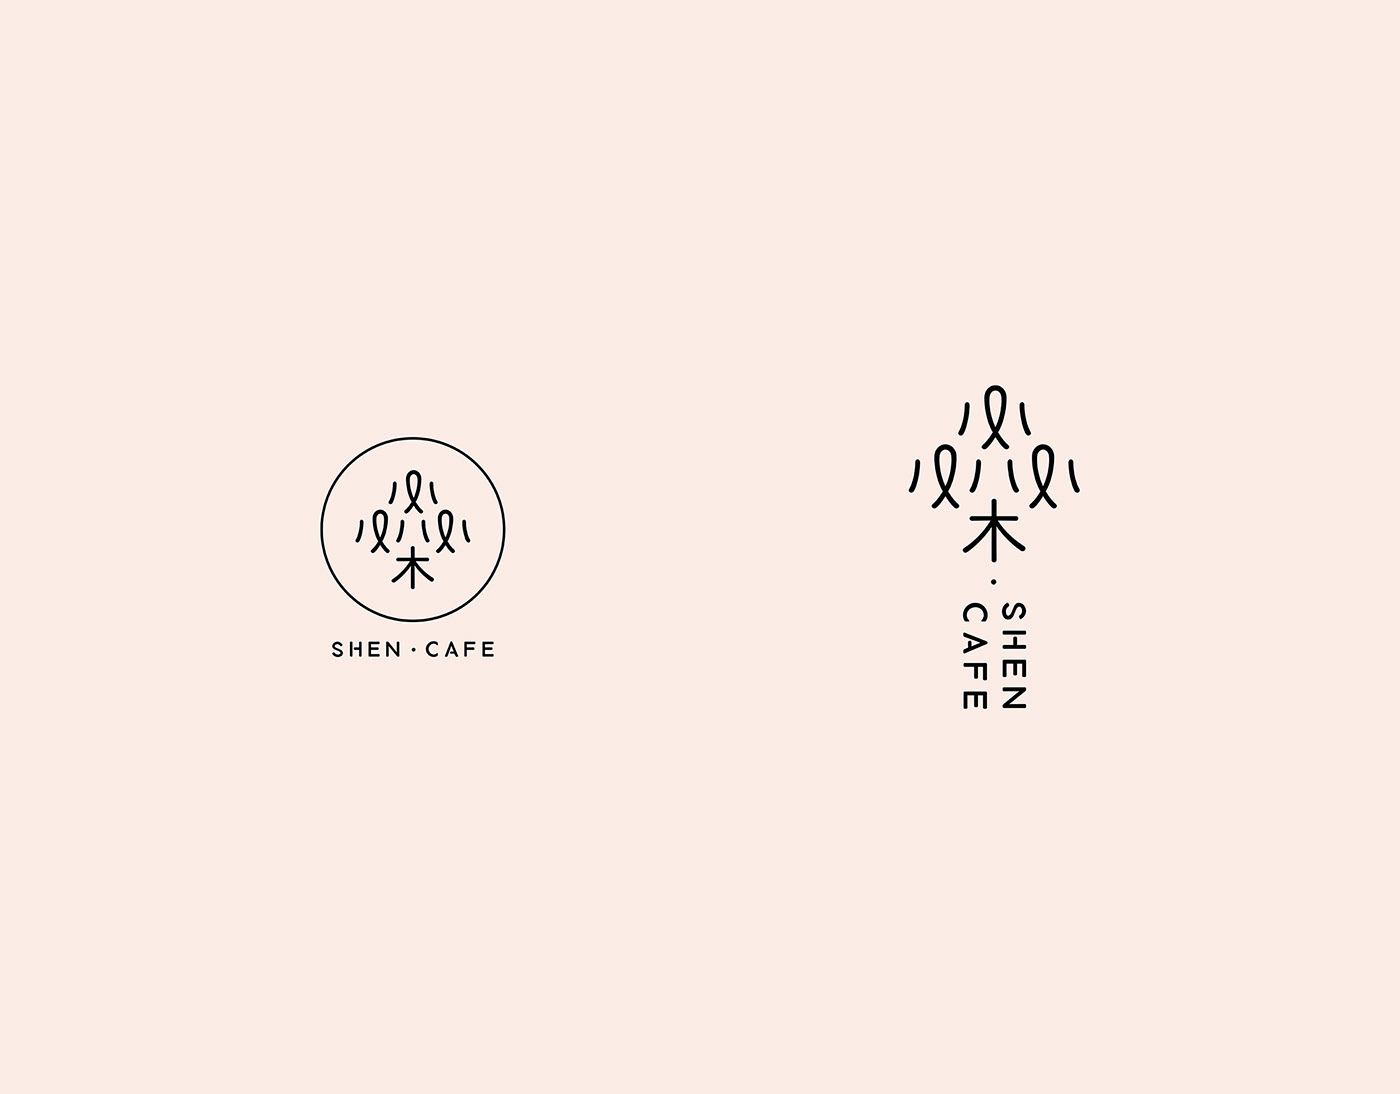 branding ,business card,graphic design ,logo,Packaging,visual identity,Logotype,Coffee,Creative Direction ,taiwan design